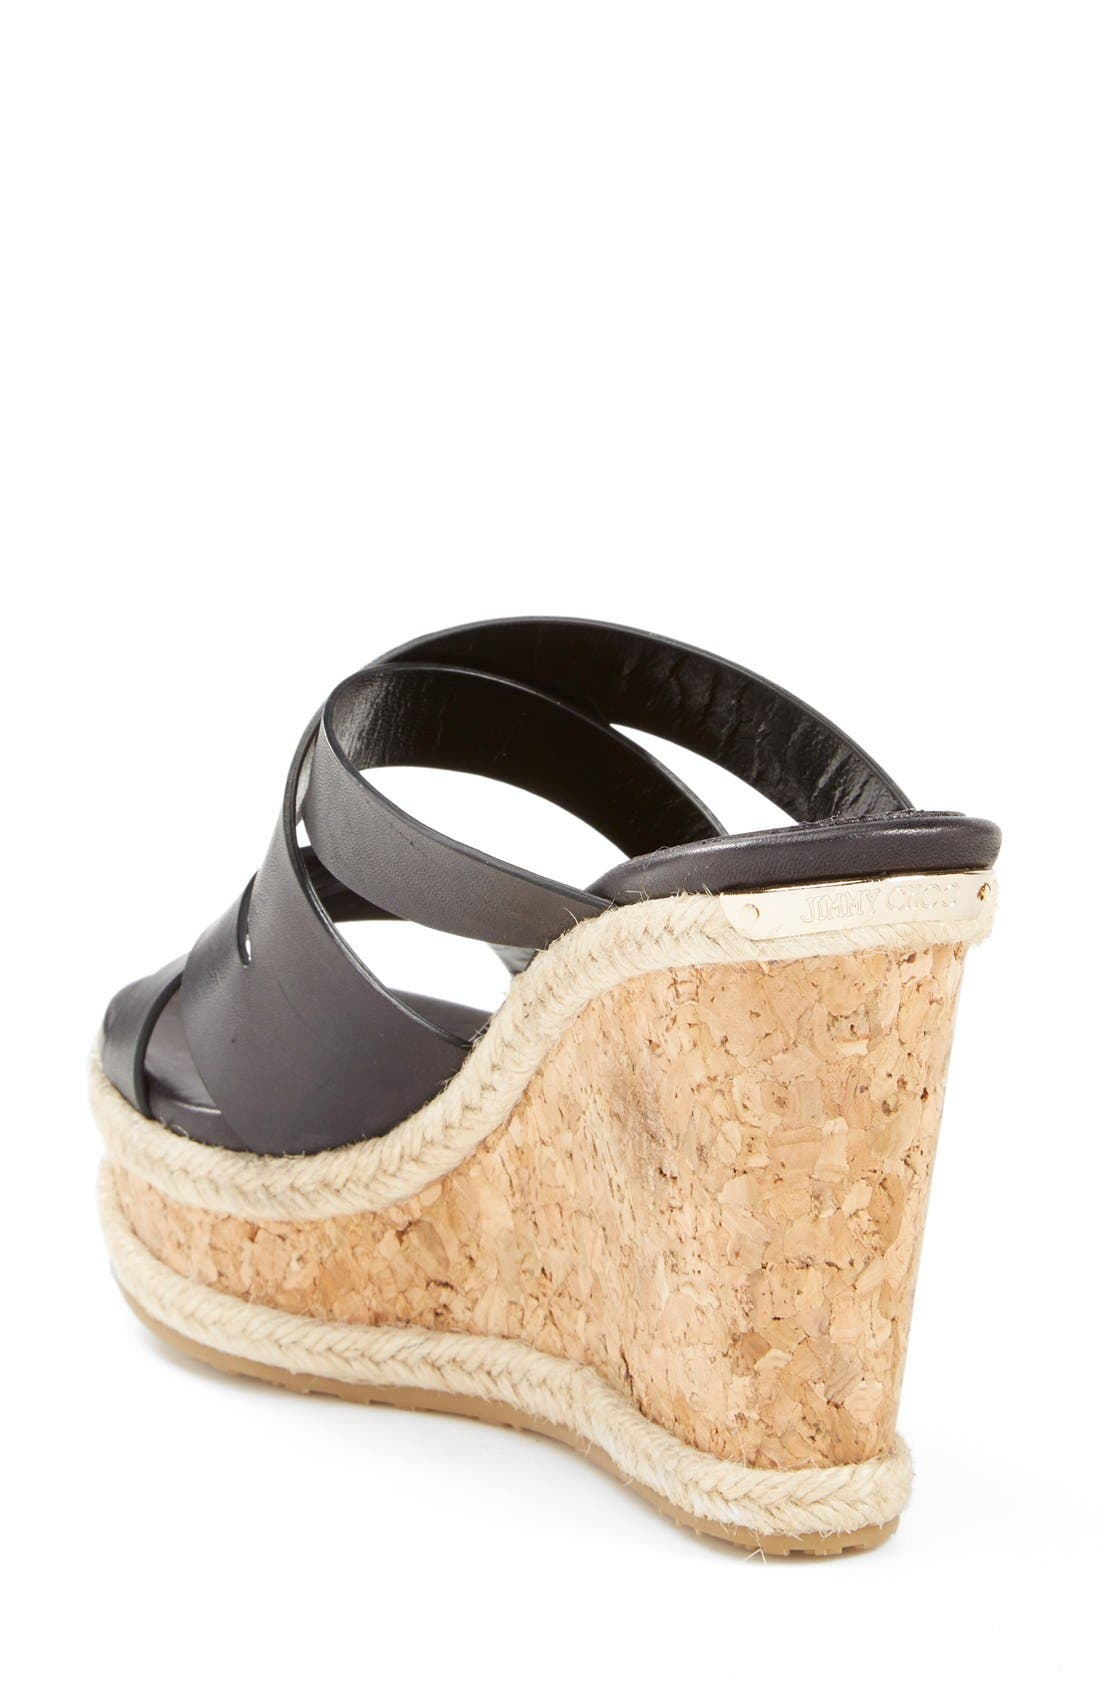 'Prisma' Leather Wedge Sandal,                             Alternate thumbnail 2, color,                             Black